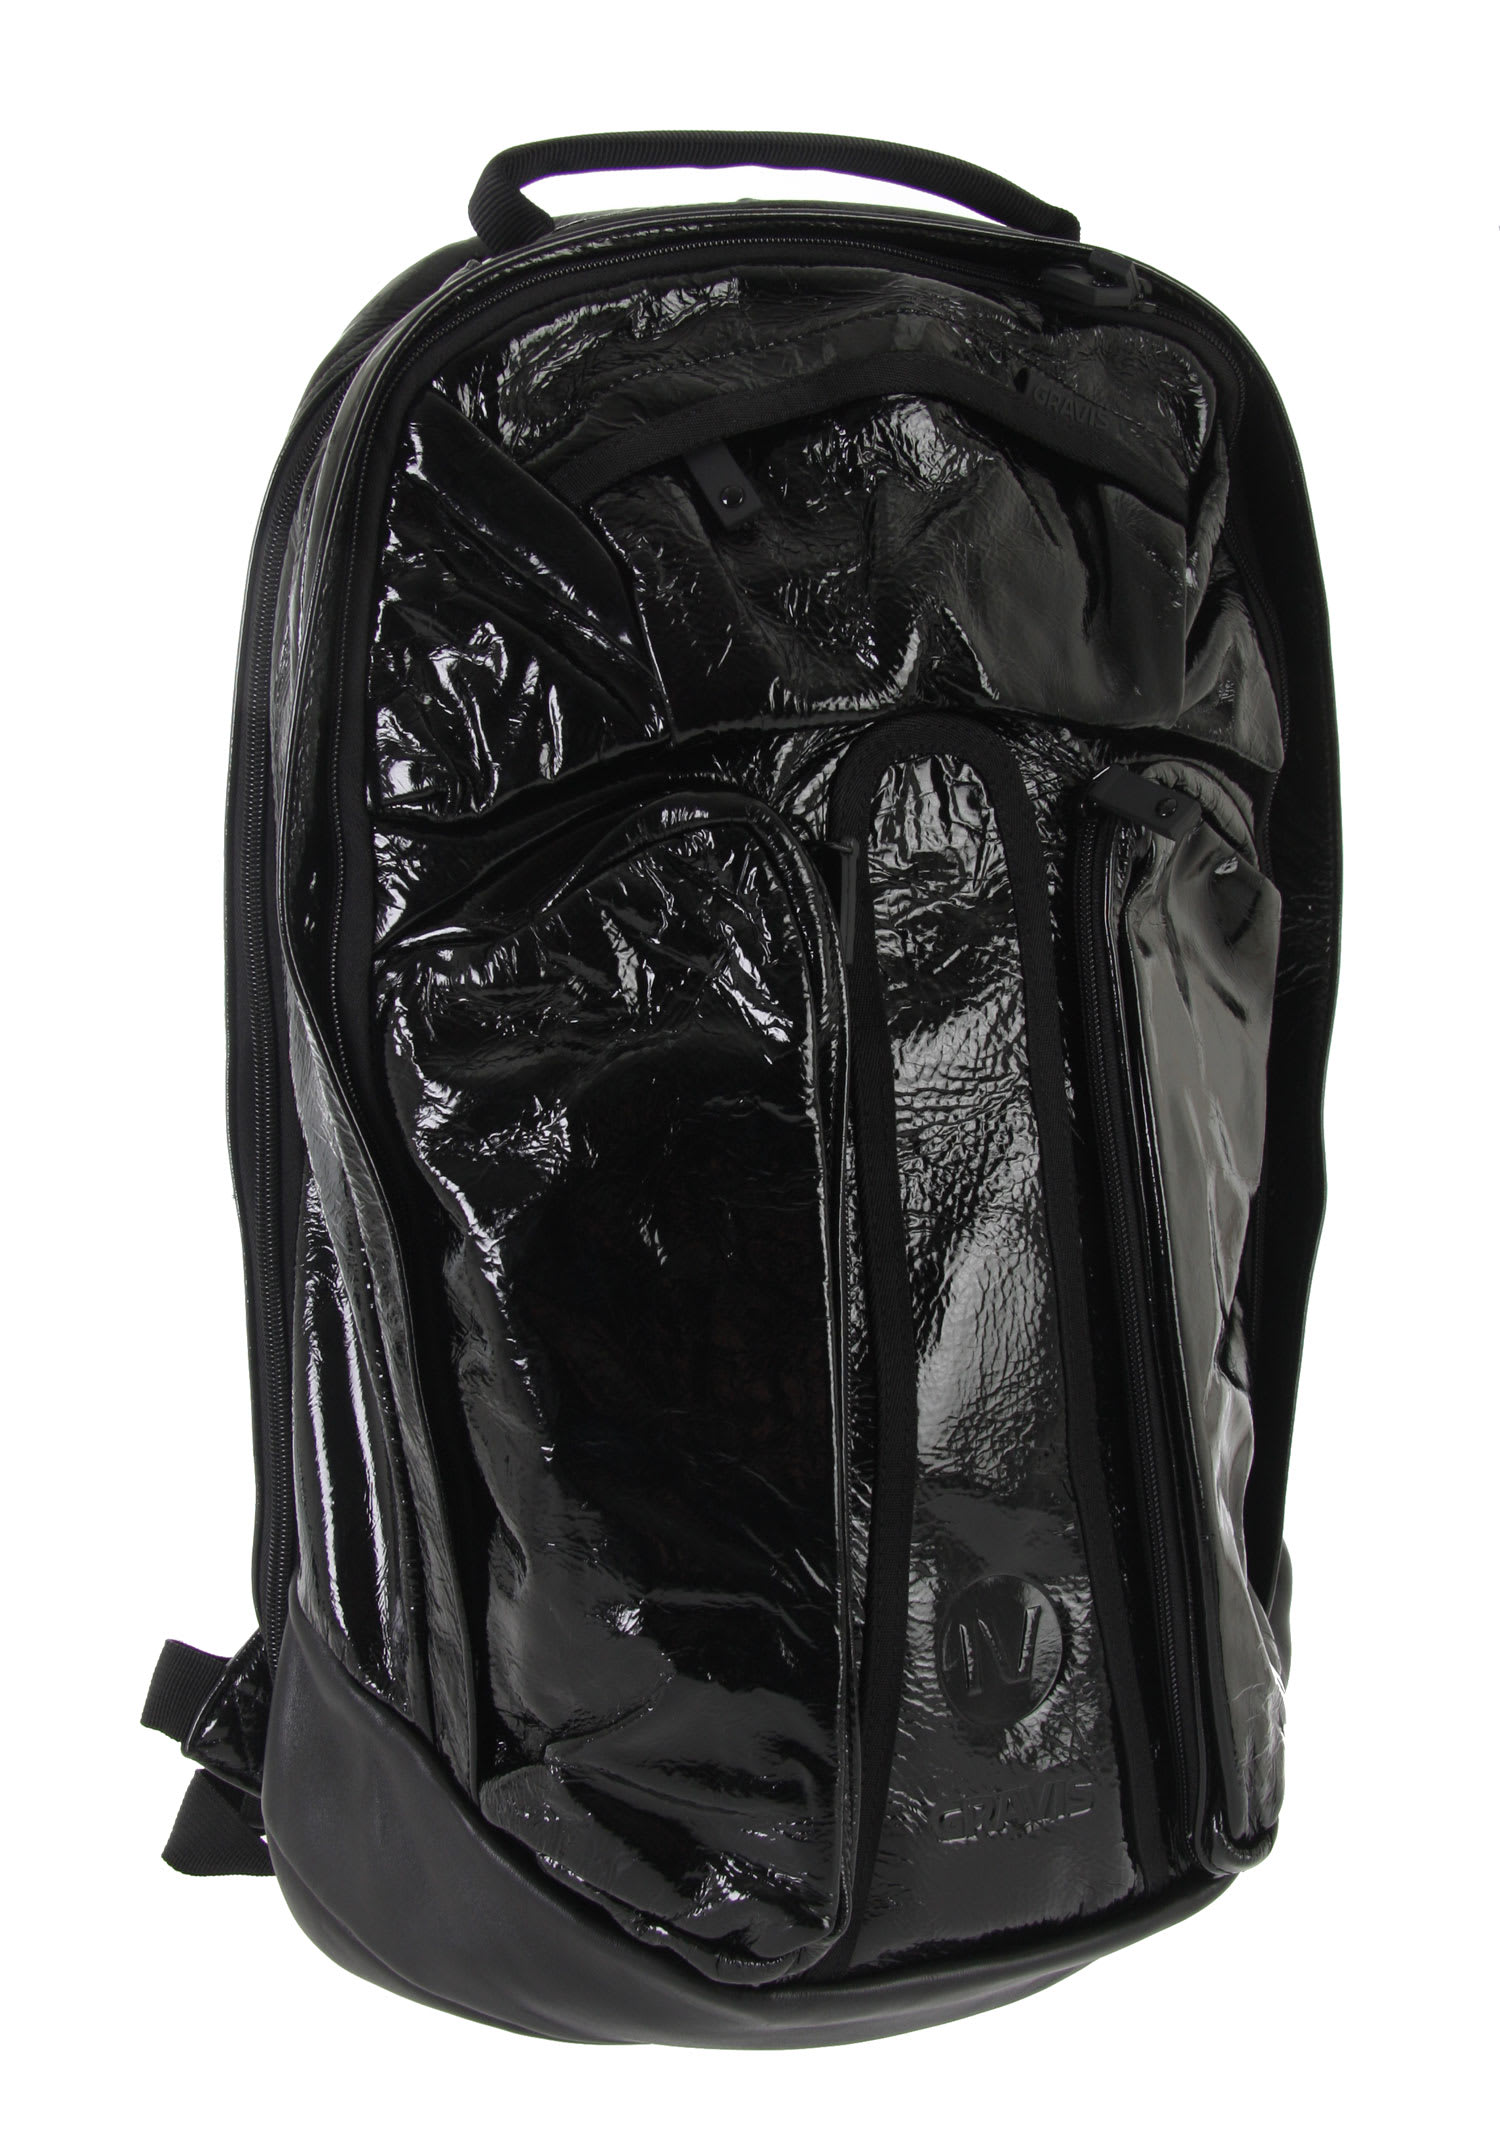 Shop for Gravis Metro Black Box Backpack Black Leather - Men's